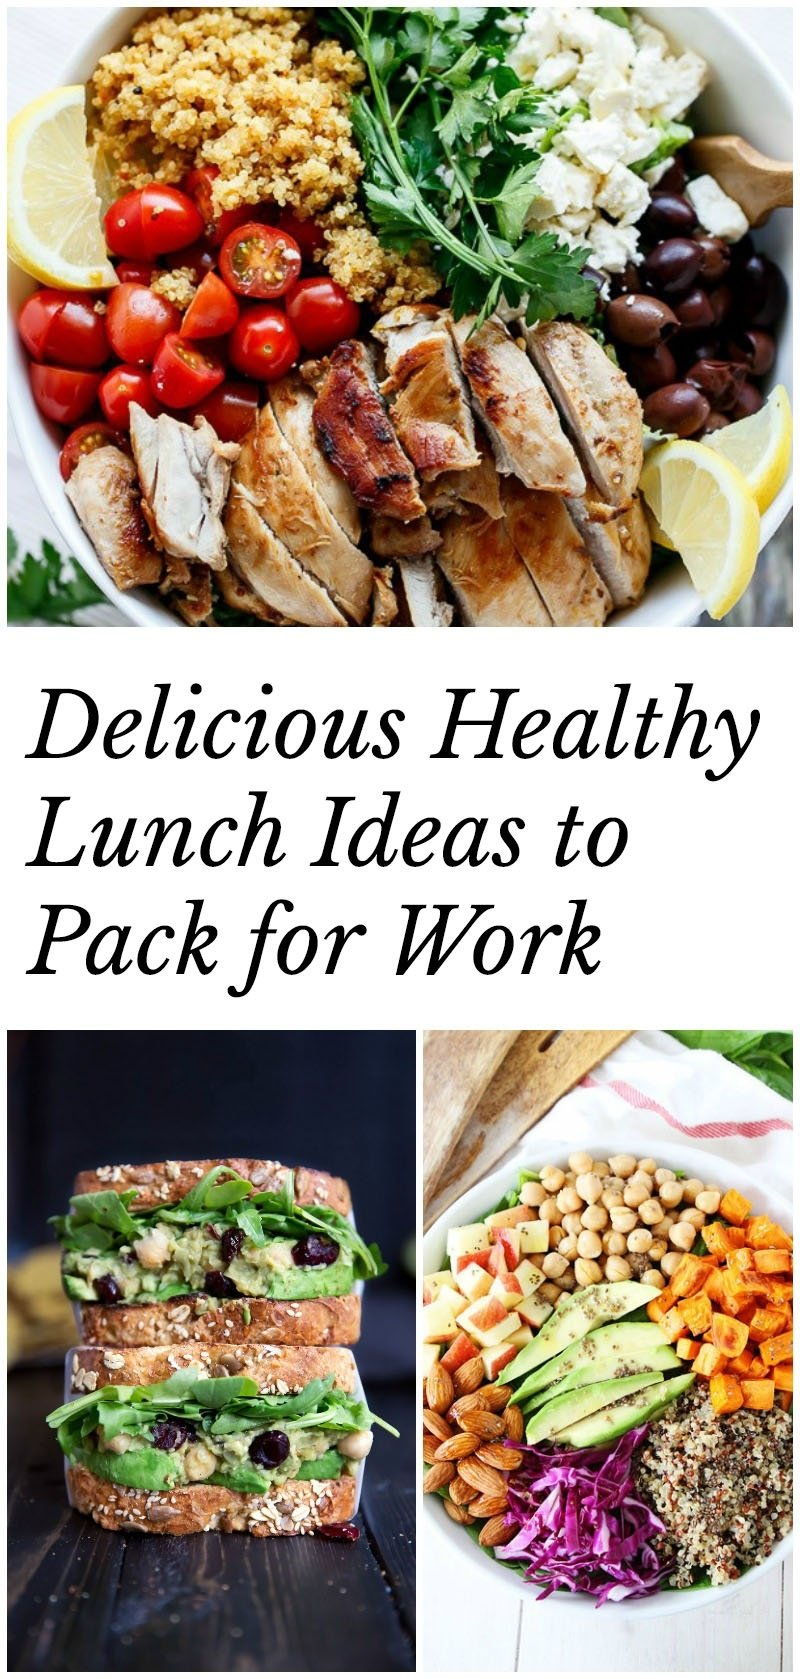 10 Attractive Cheap Lunch Ideas For Work healthy lunch ideas to pack for work 40 recipes 4 2020